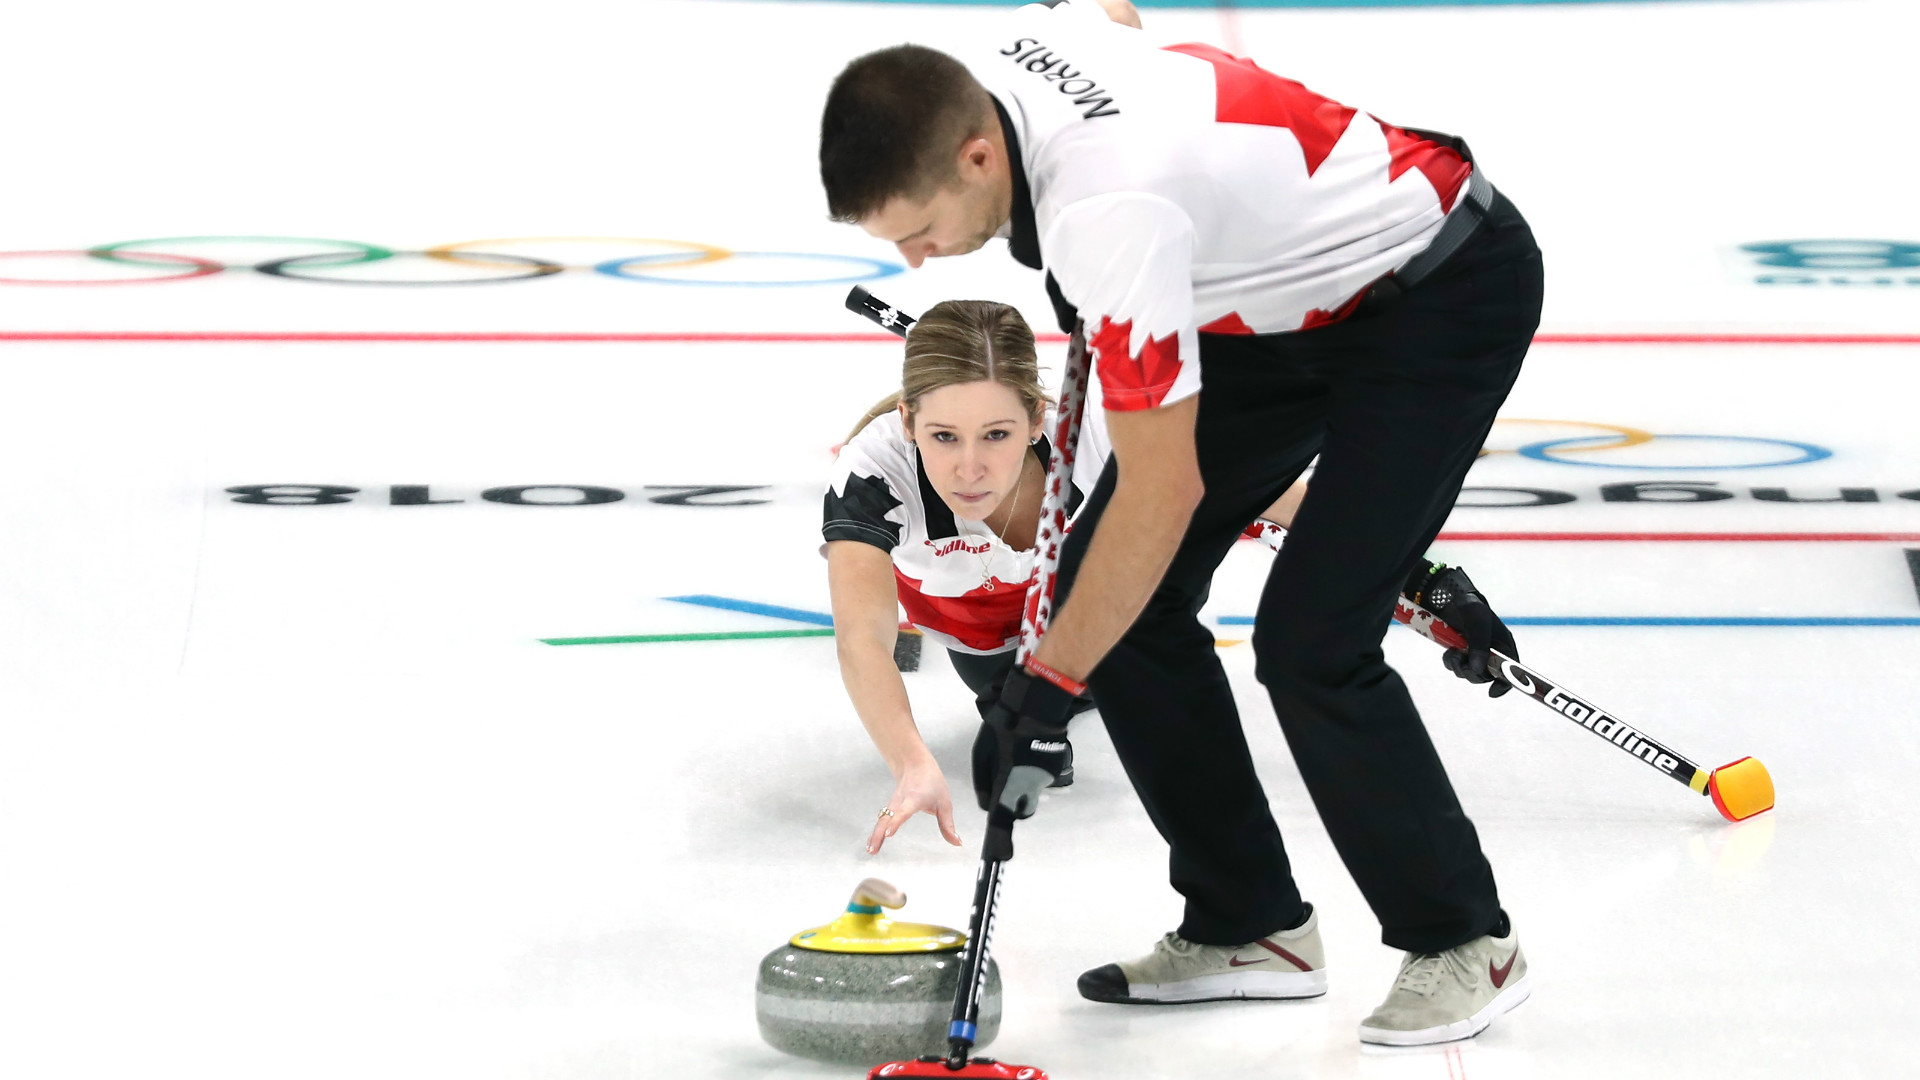 Image result for mixed doubles curling olympics 2018 final